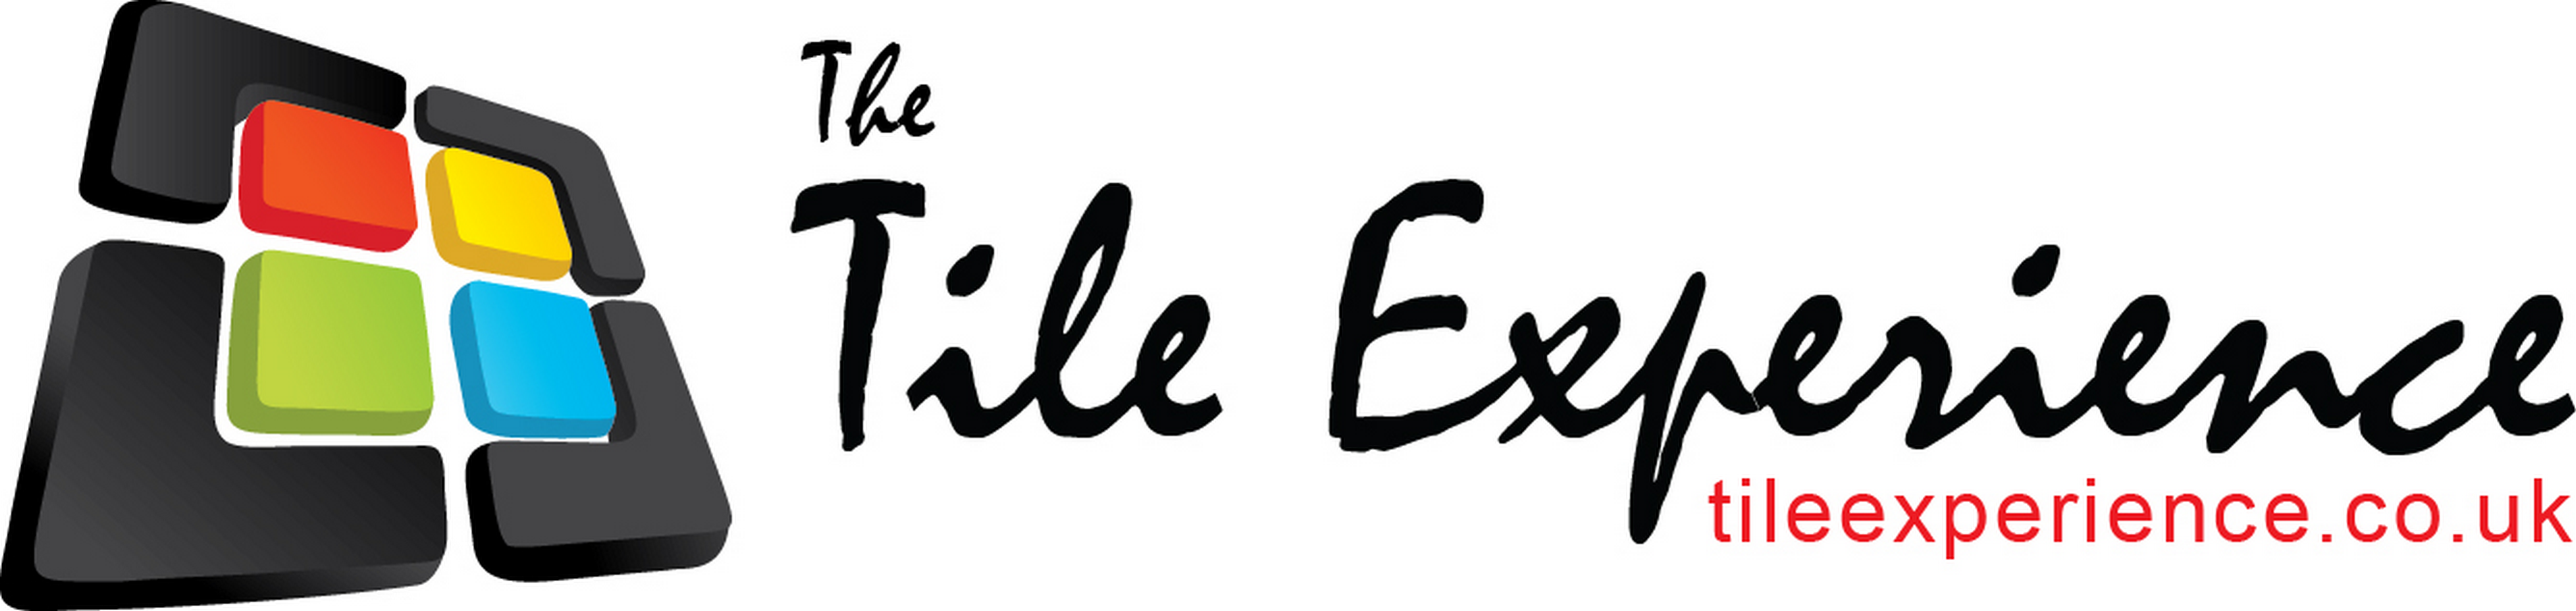 The Tile Experience Help Center home page